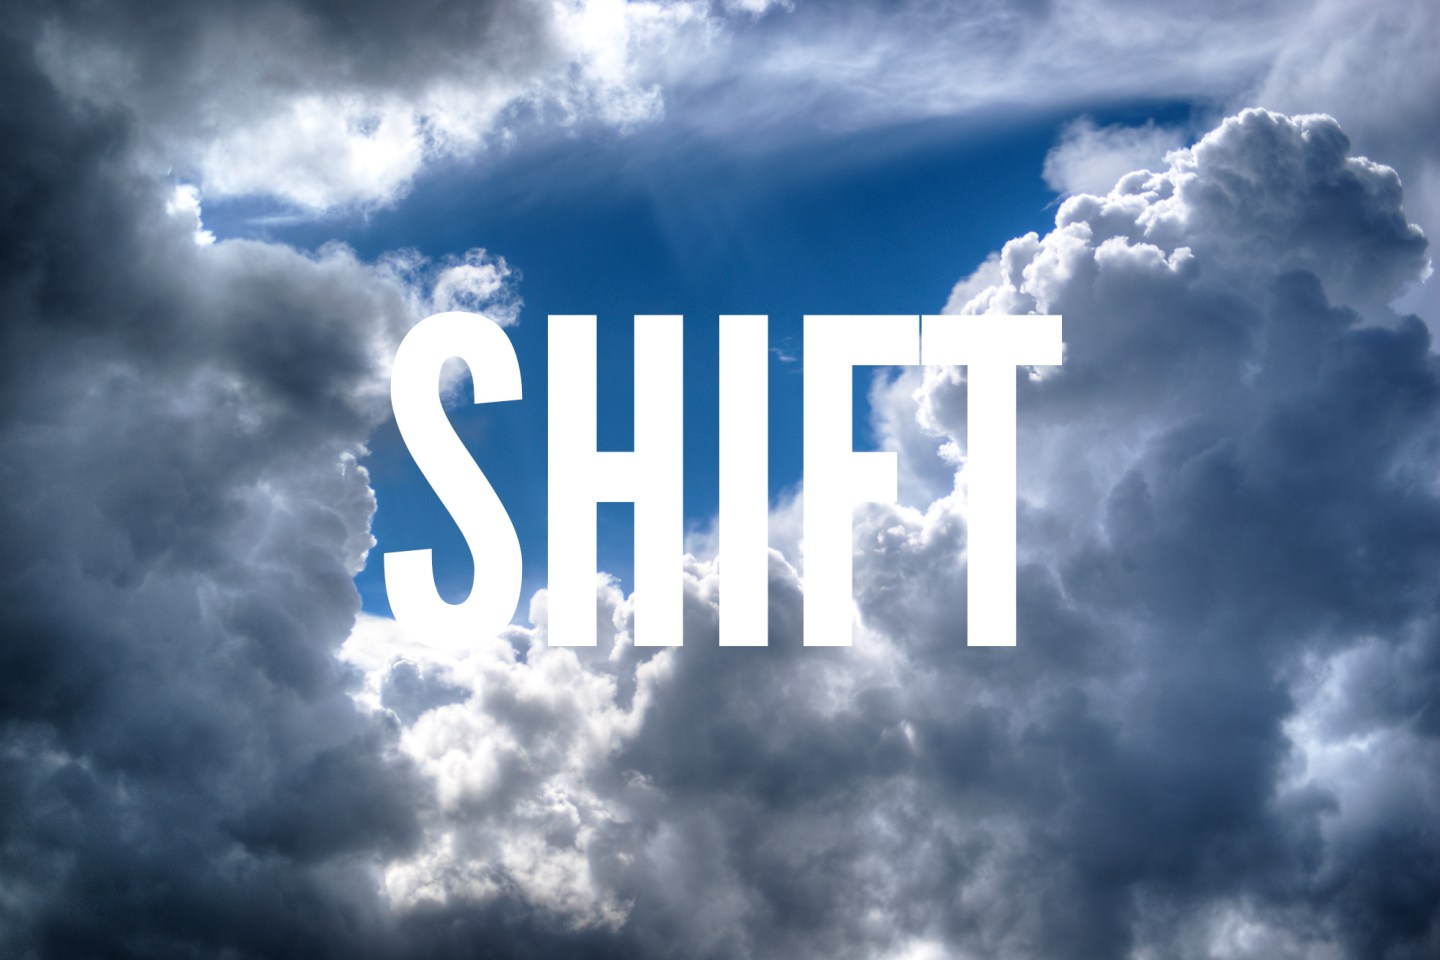 Shift | BobbyShirley.com